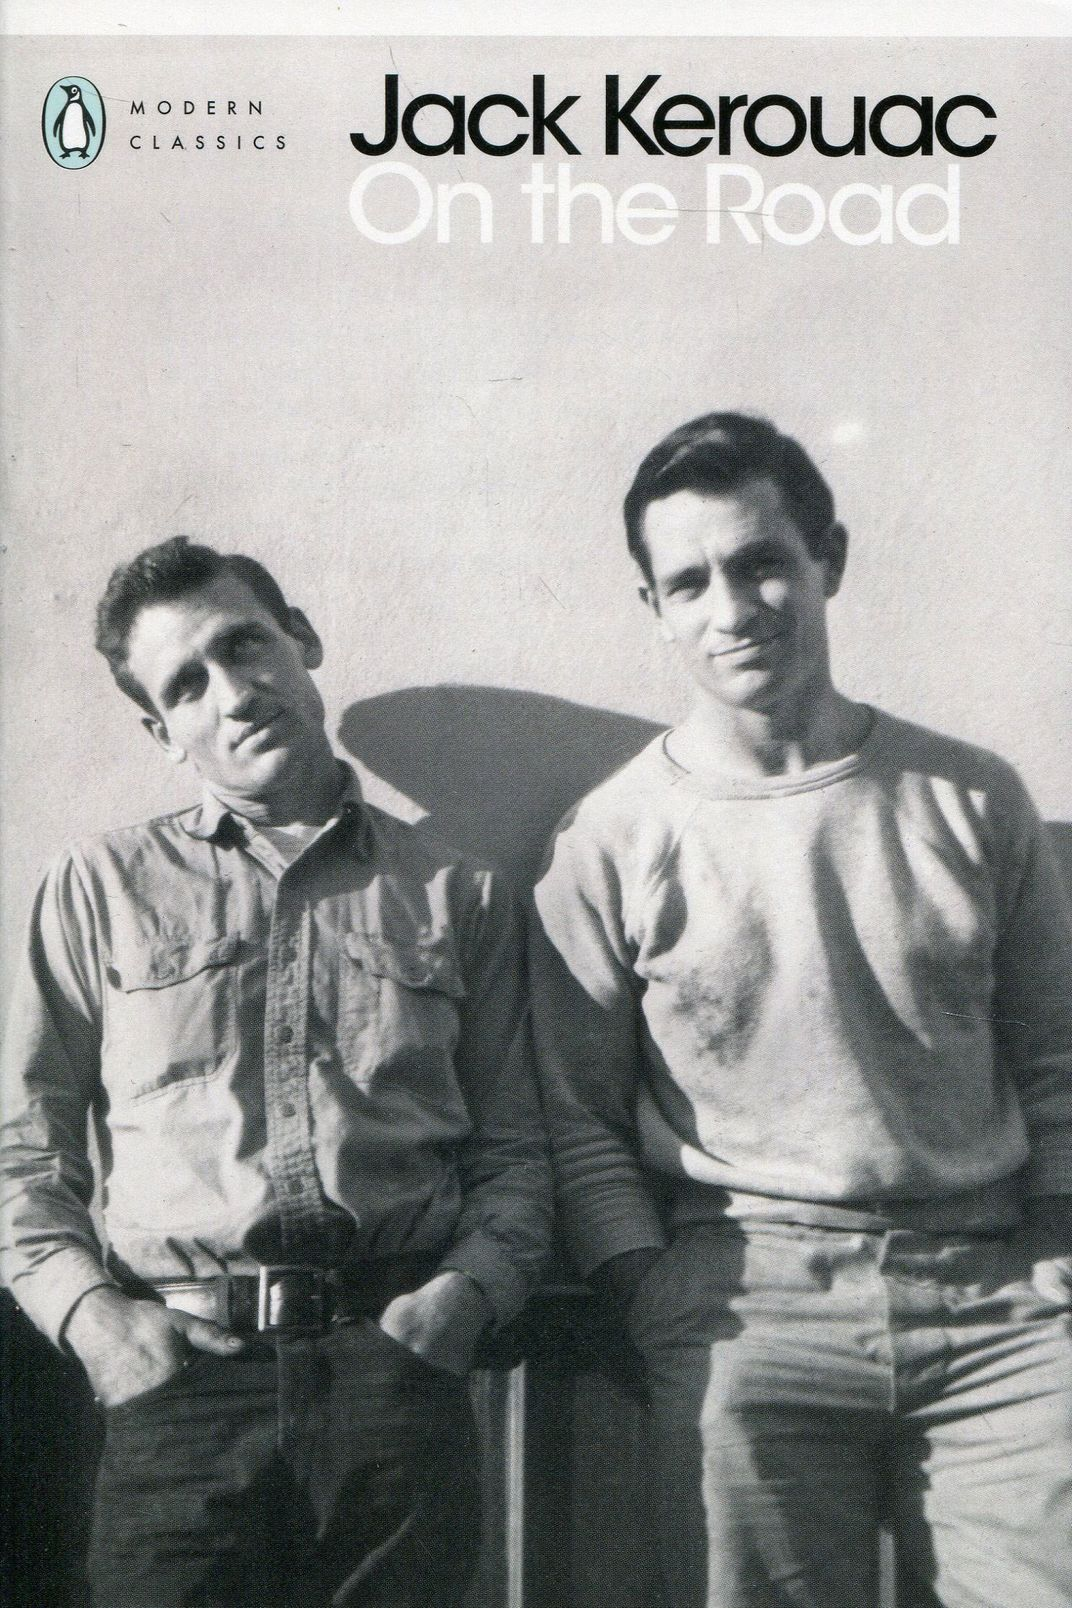 <em>On the Road</em> by Jack Kerouac